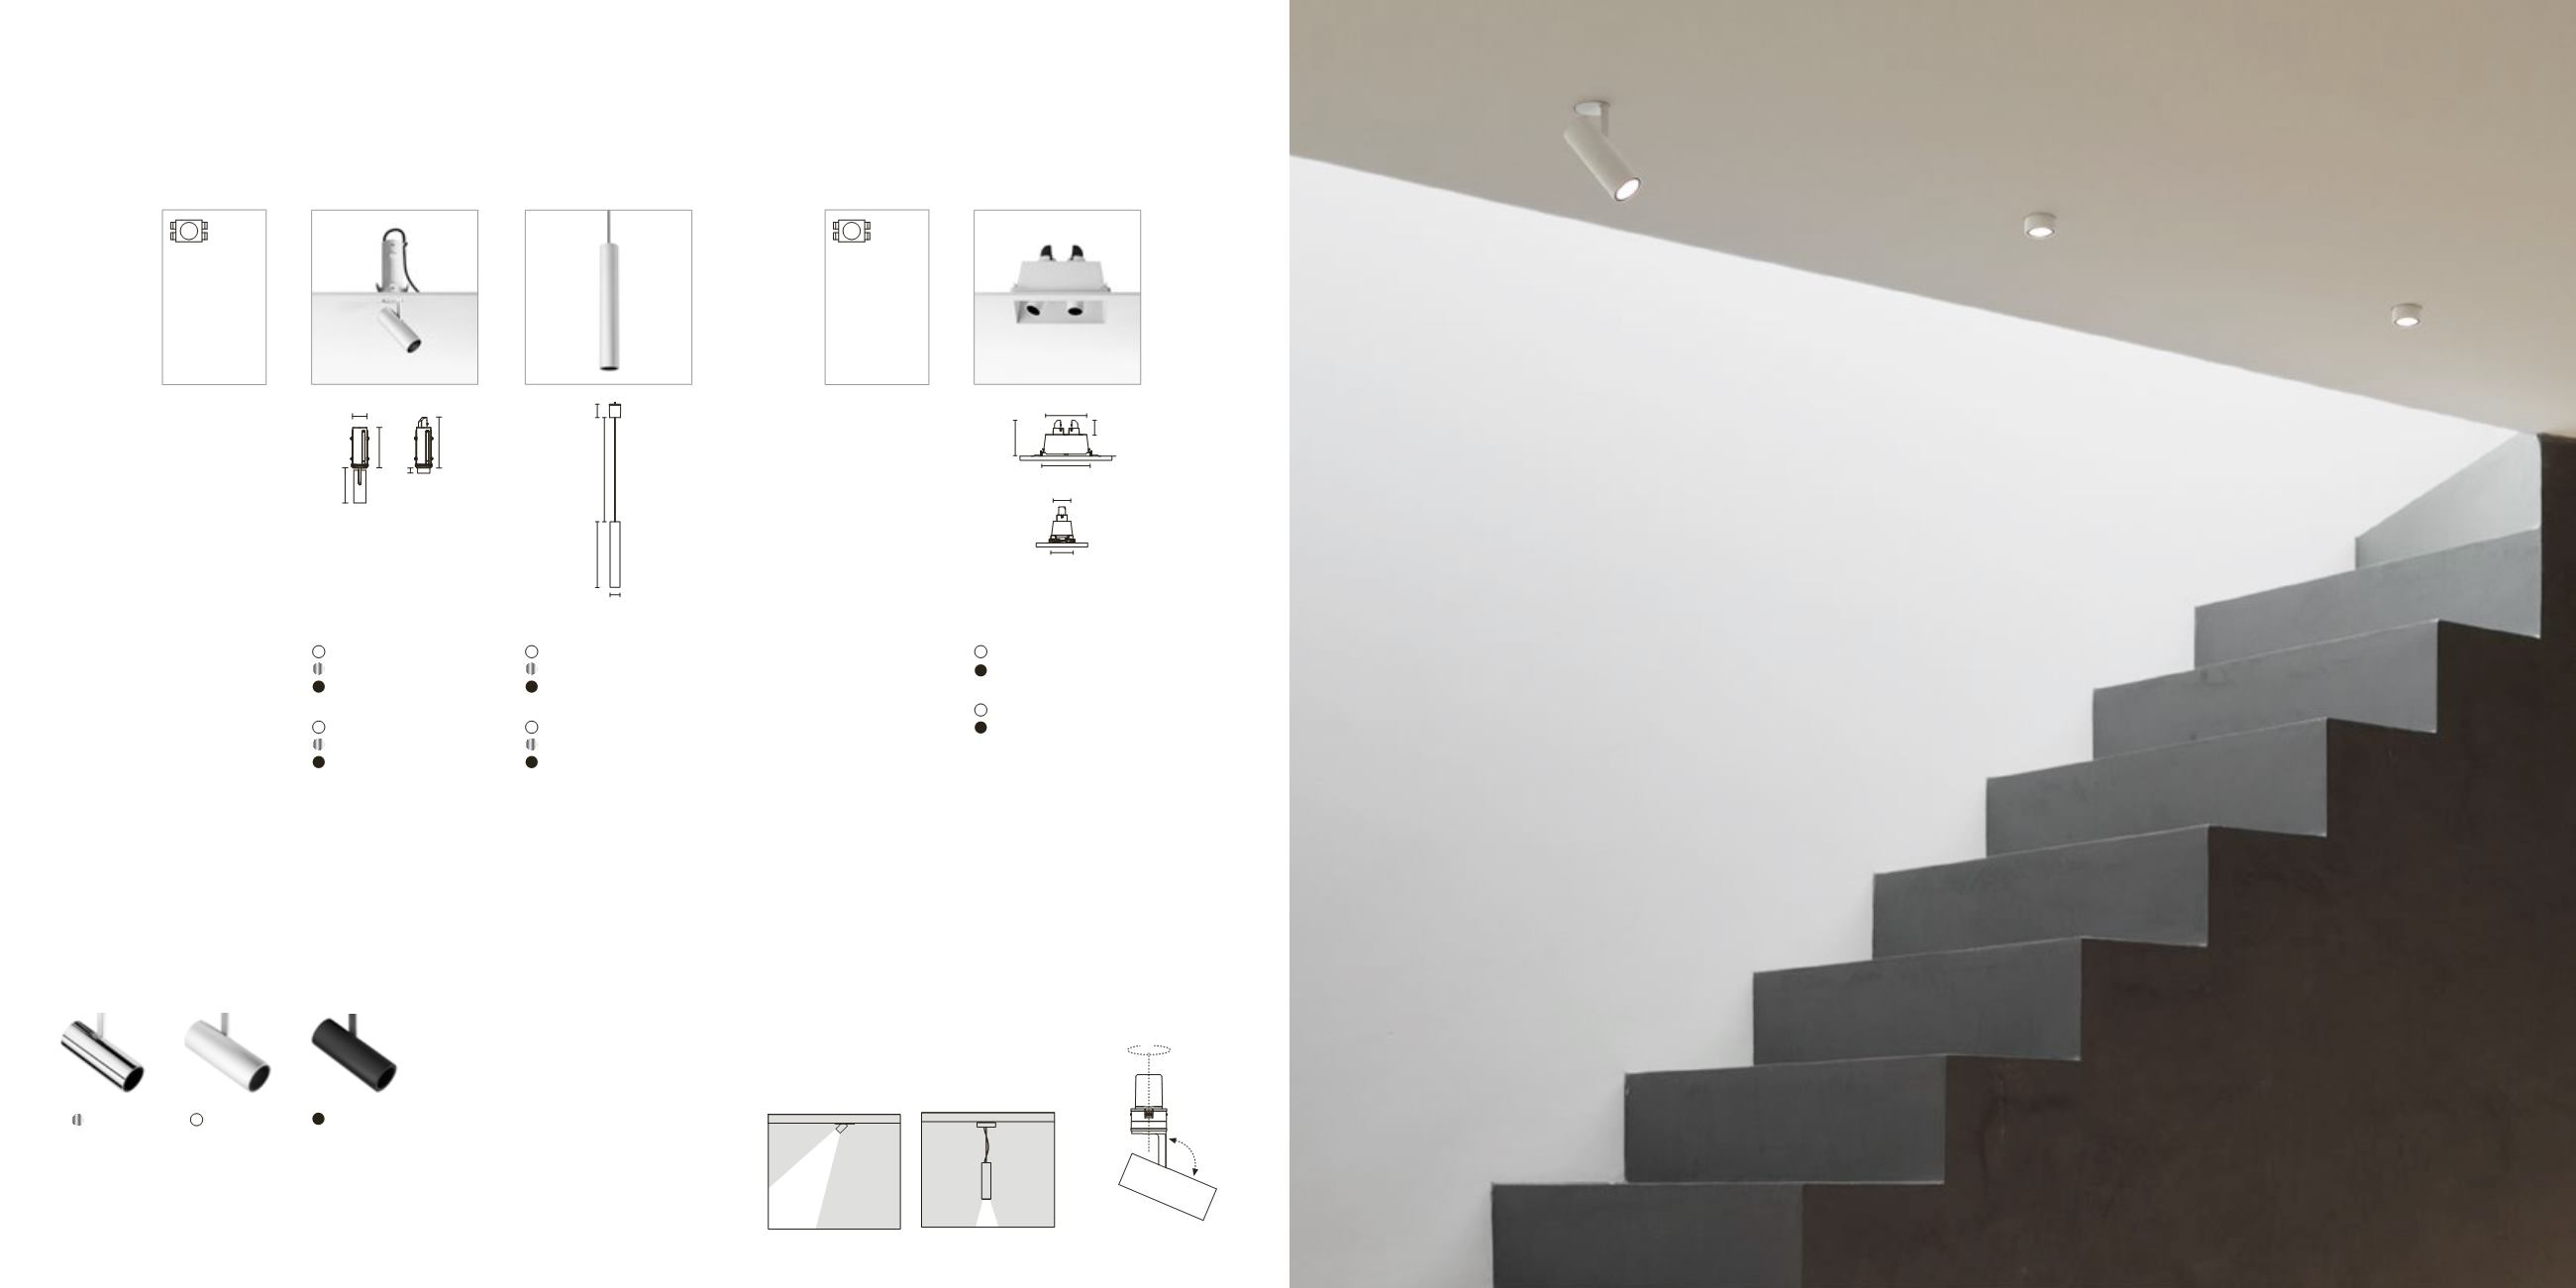 Flos architectural find me double point power led 6w white for Find architecture